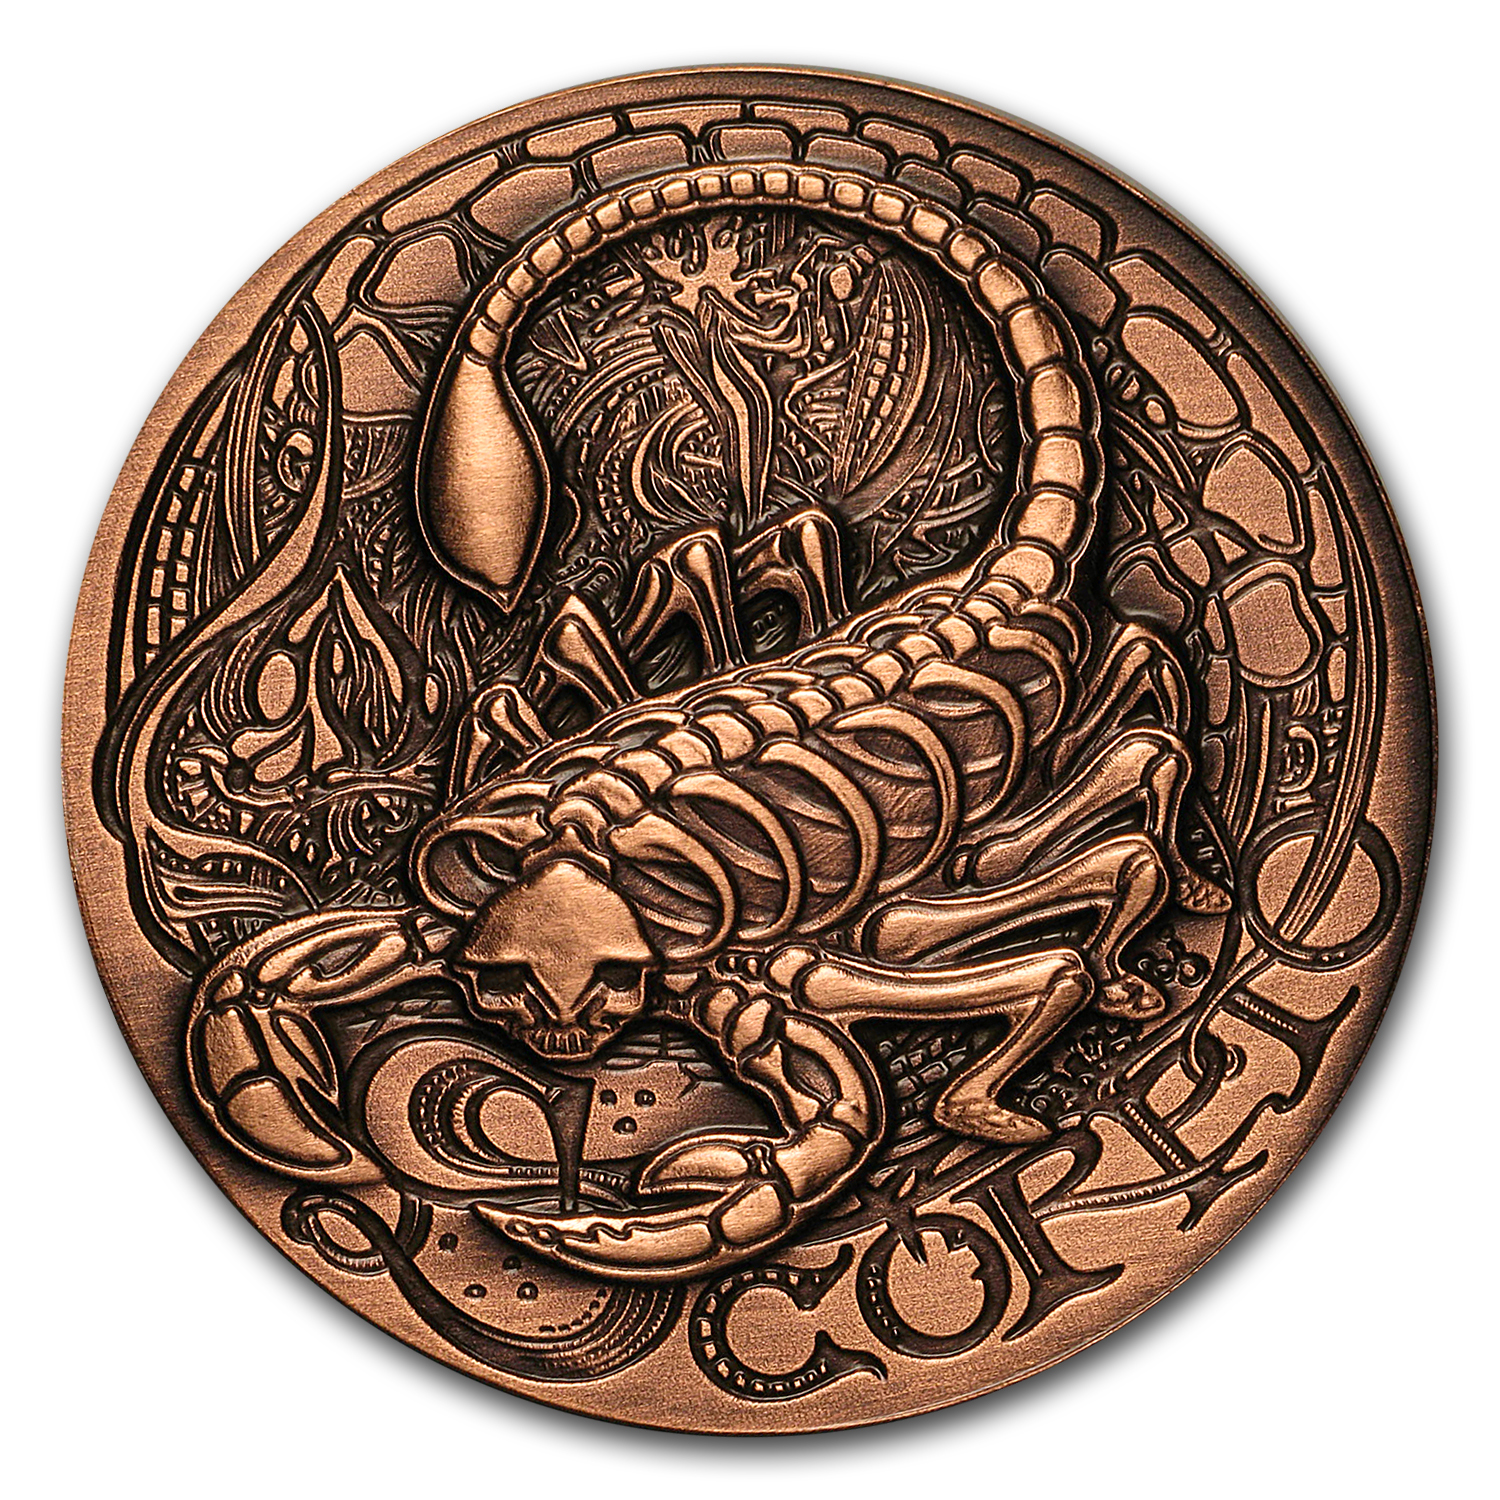 1 oz Copper Round - Zodiac Skull Series (Scorpio)